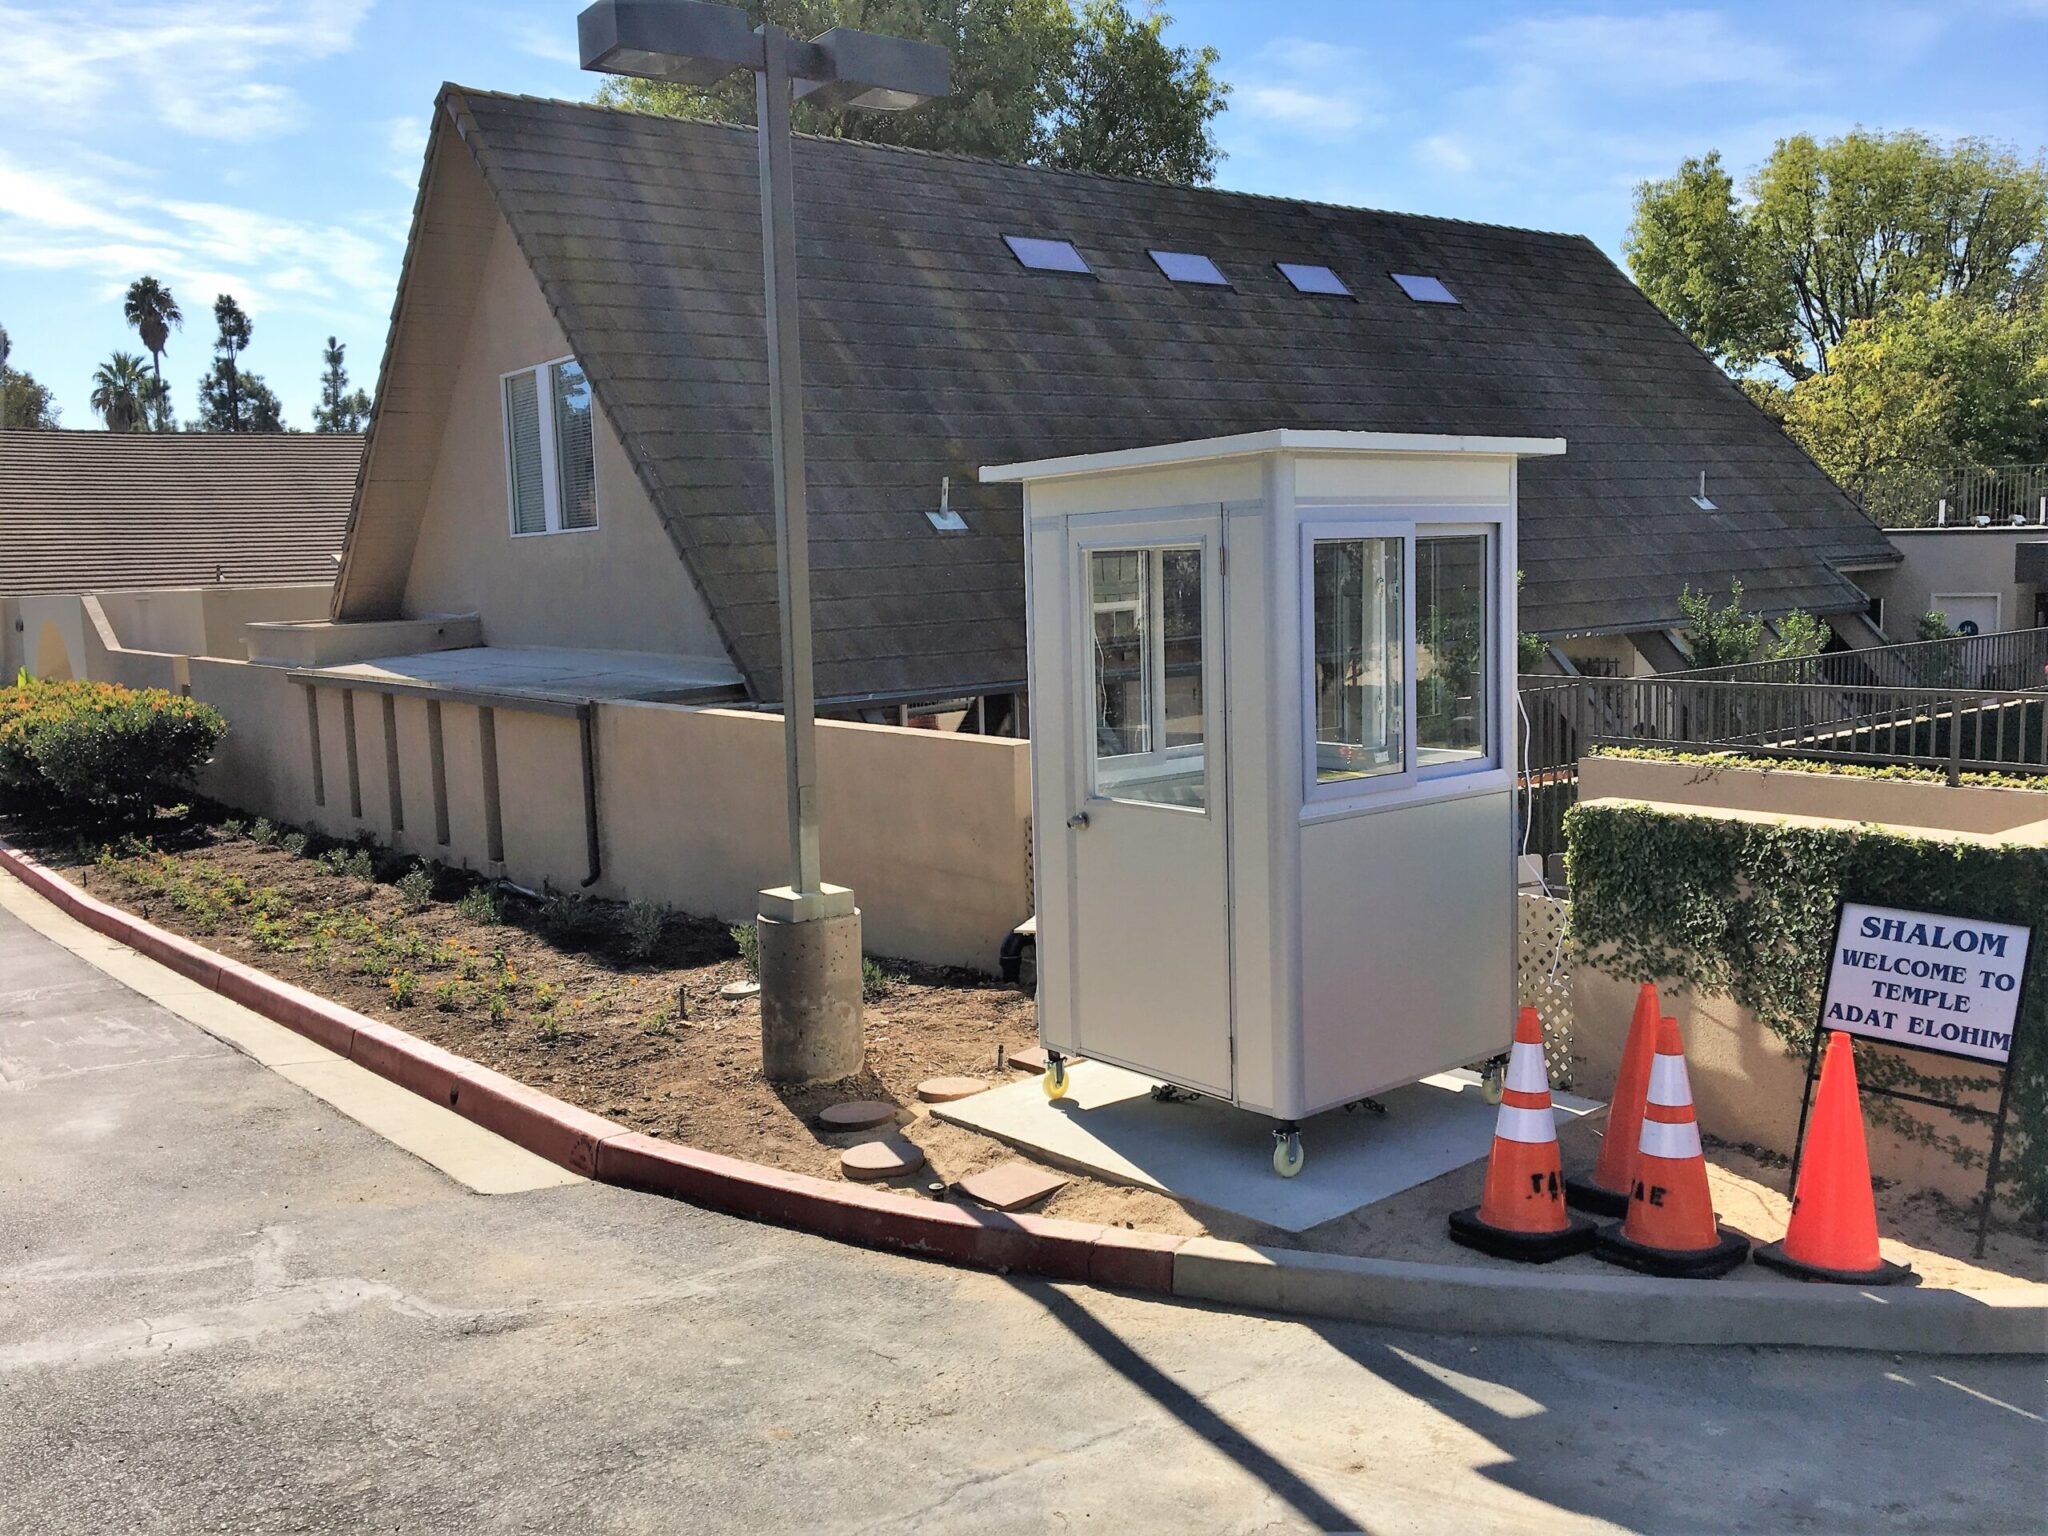 4x4 Security Guard Booth in Thousand Oaks, CA outside a Temple with Caster Wheels, Custom Exterior Color, and Built-in AC